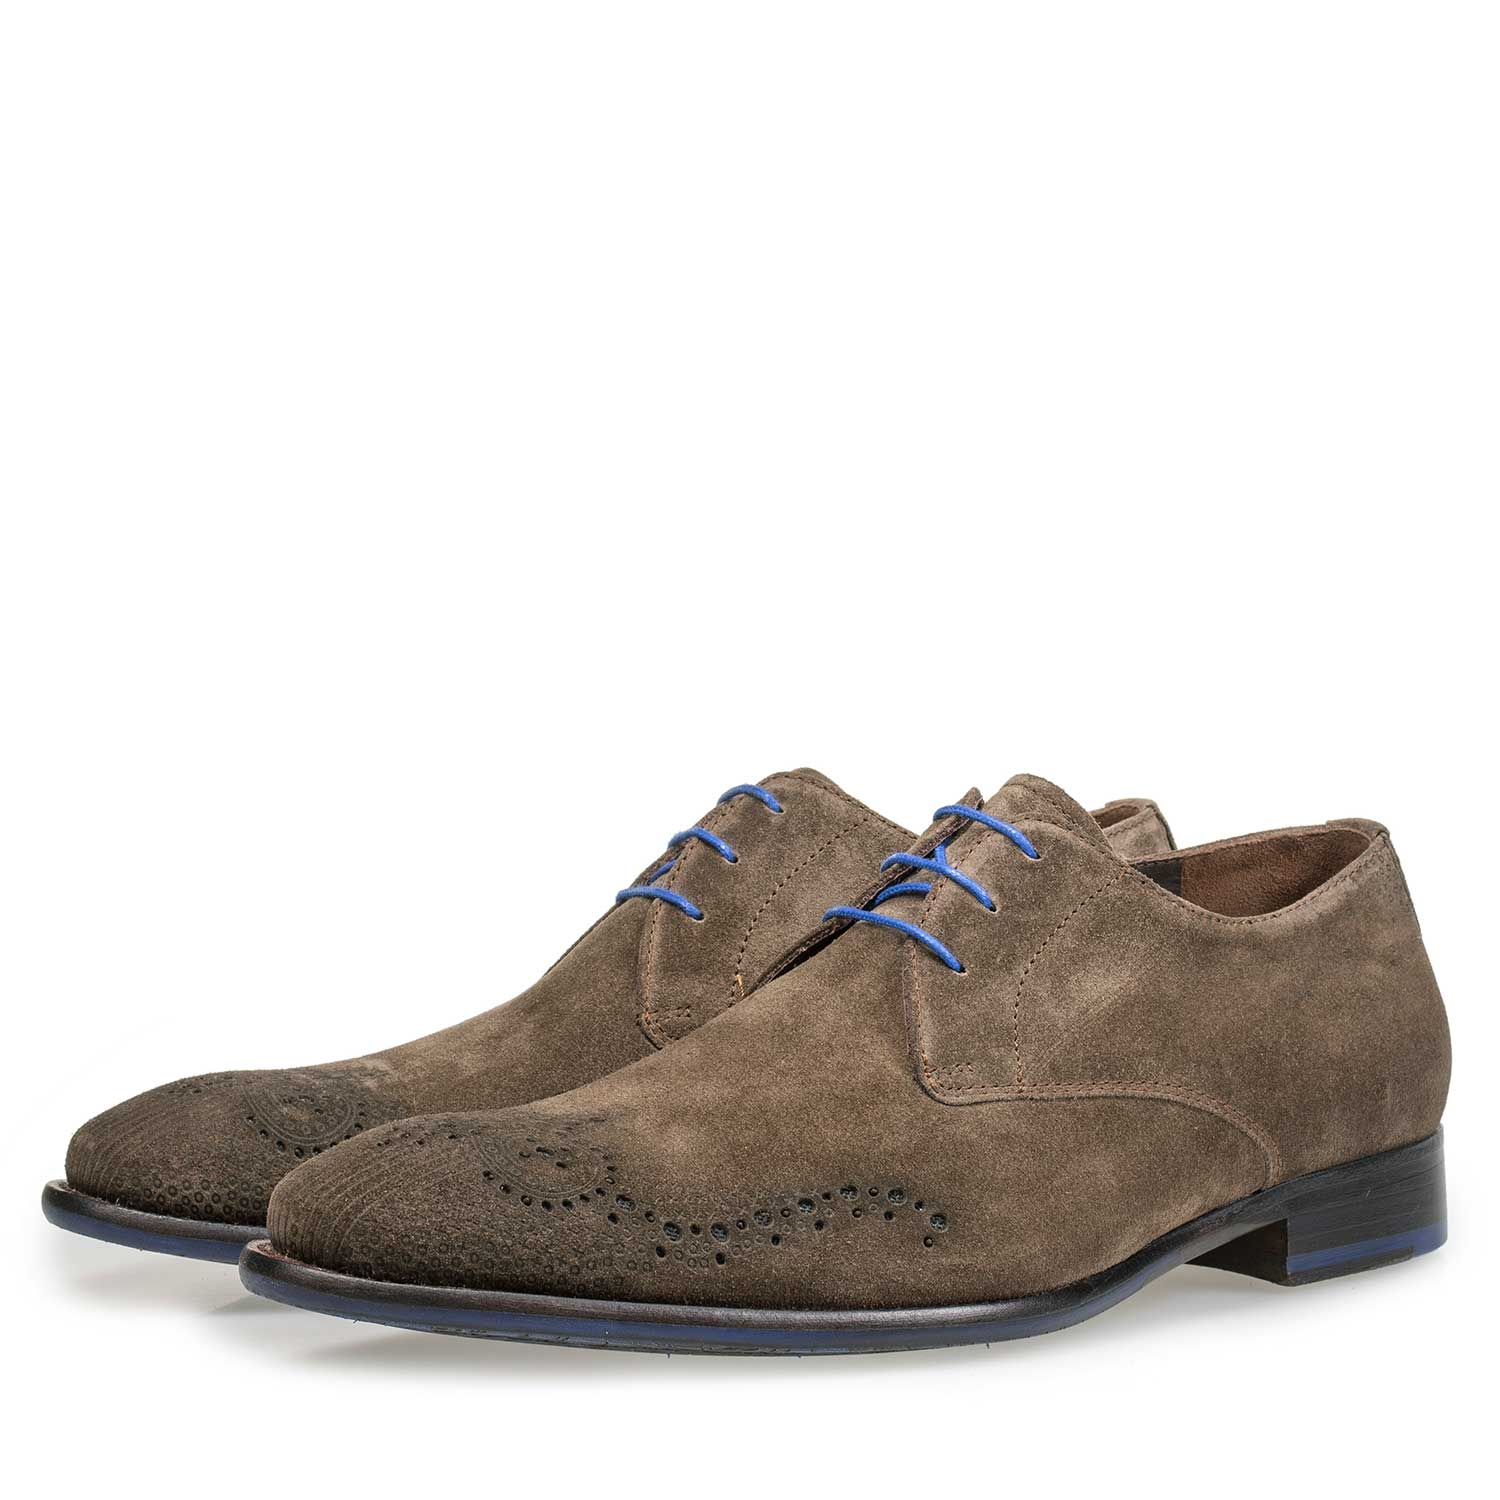 18075/05 - Suede leather lace shoe with brogue details taupe